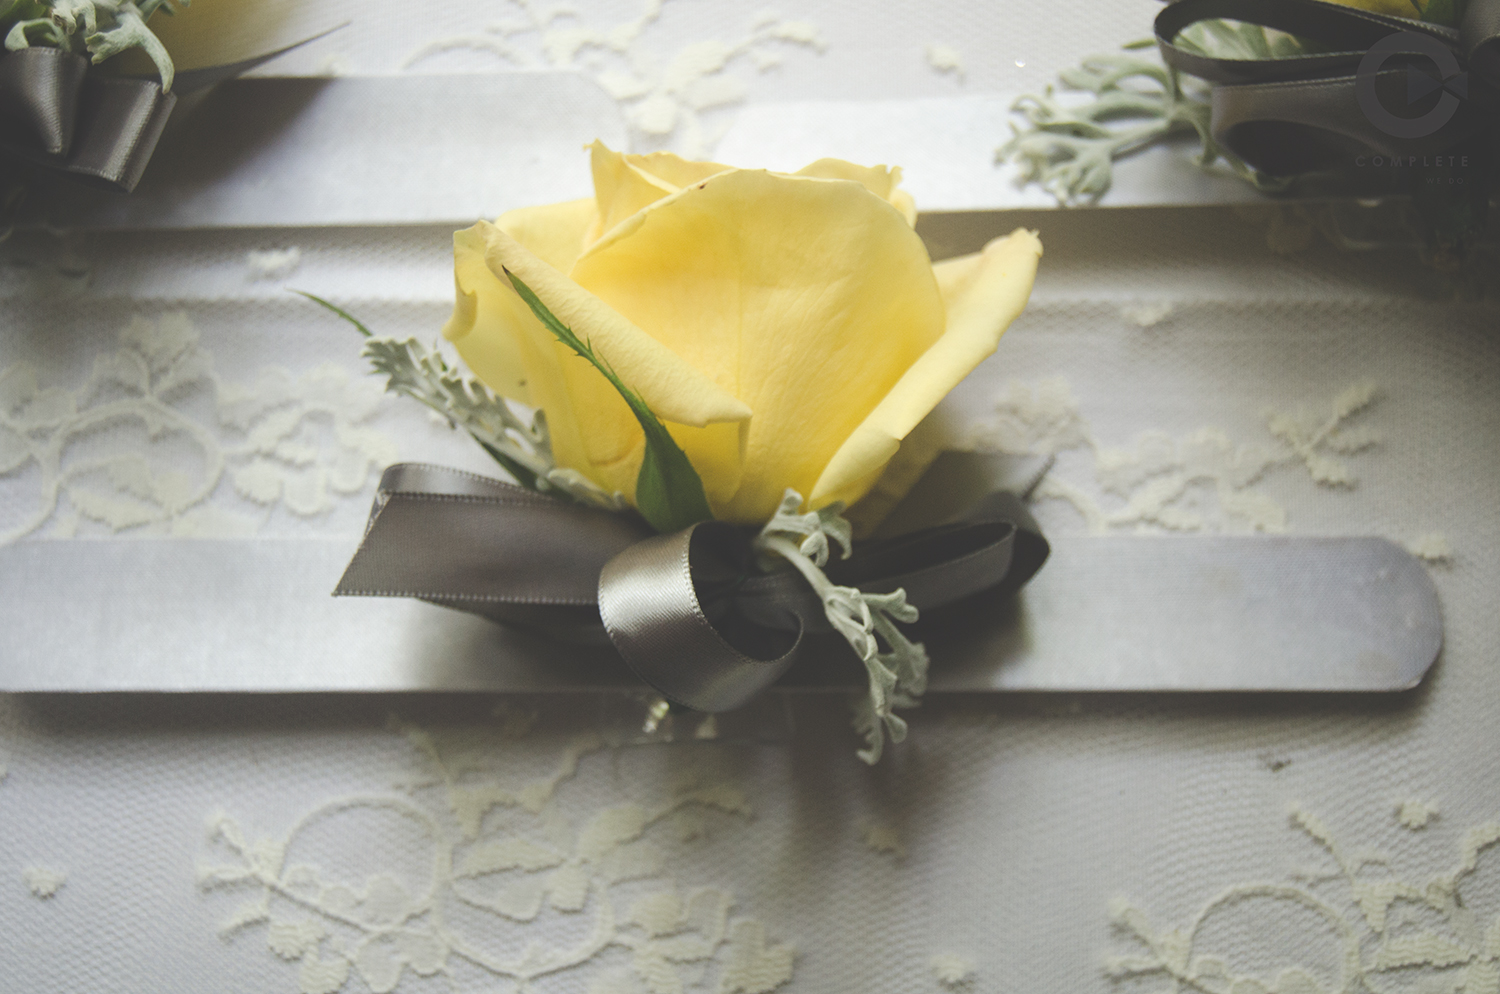 Their flowers could not have been more gorgeous. The yellow mirrored their continued smiles throughout the day.